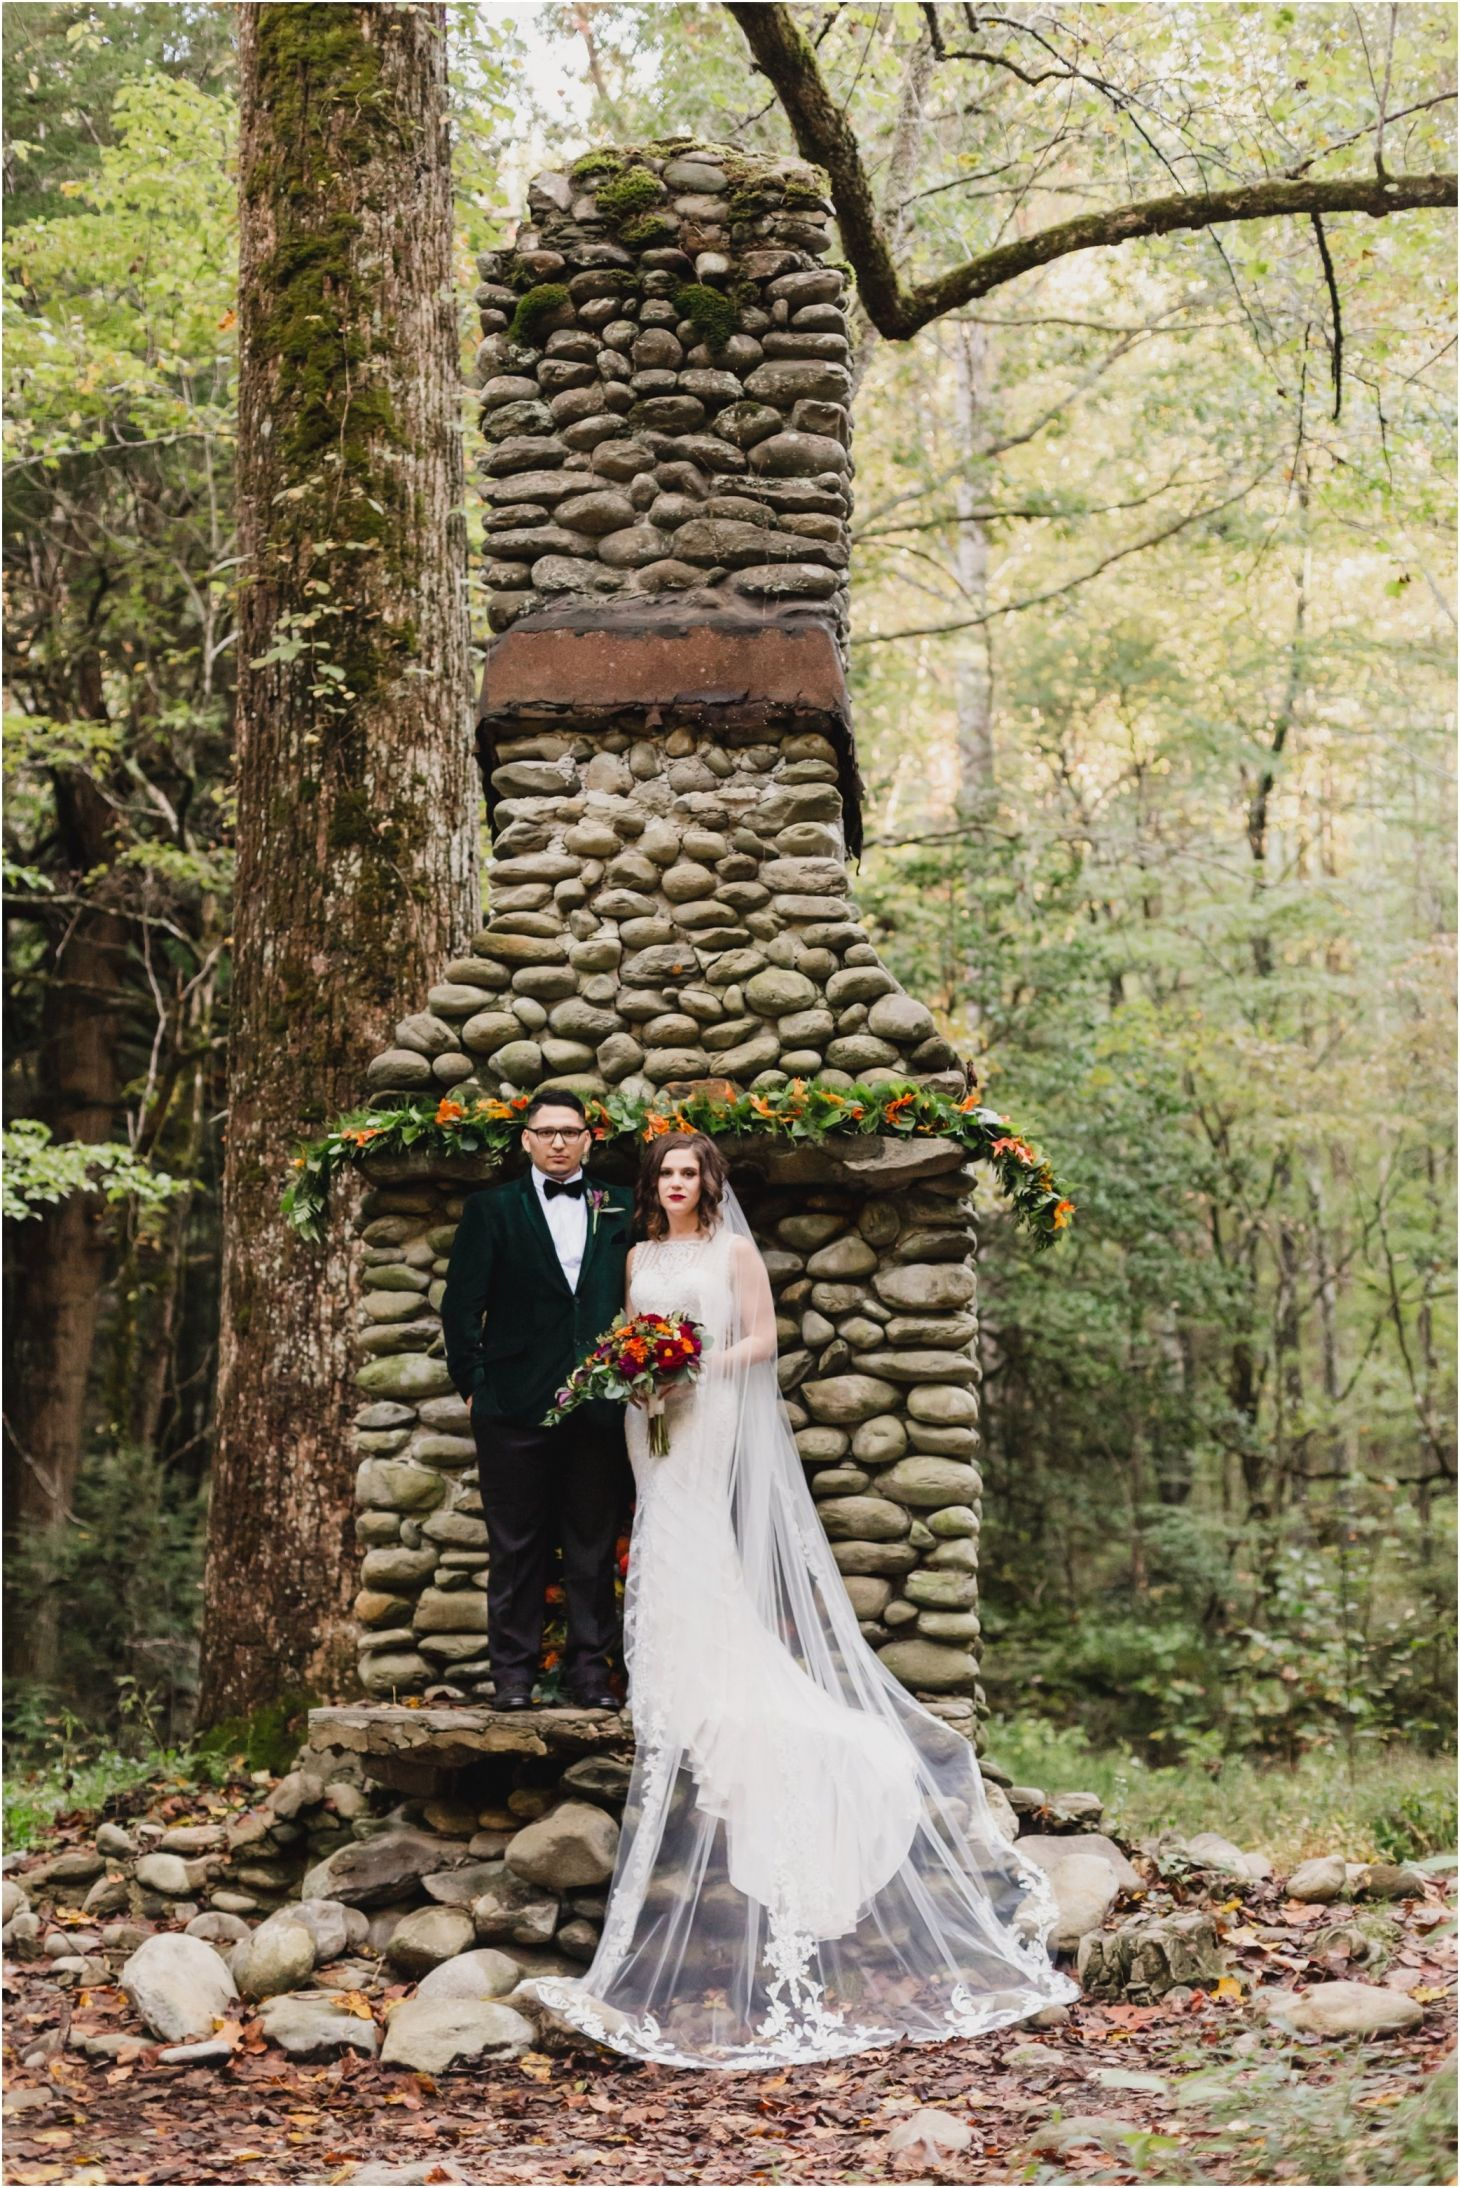 Elkmont Elopement In The Great Smoky Mountains National Park In Gatlinburg Tennessee Near Spe Gatlinburg Weddings Smoky Mountain Wedding Gatlinburg Elopement